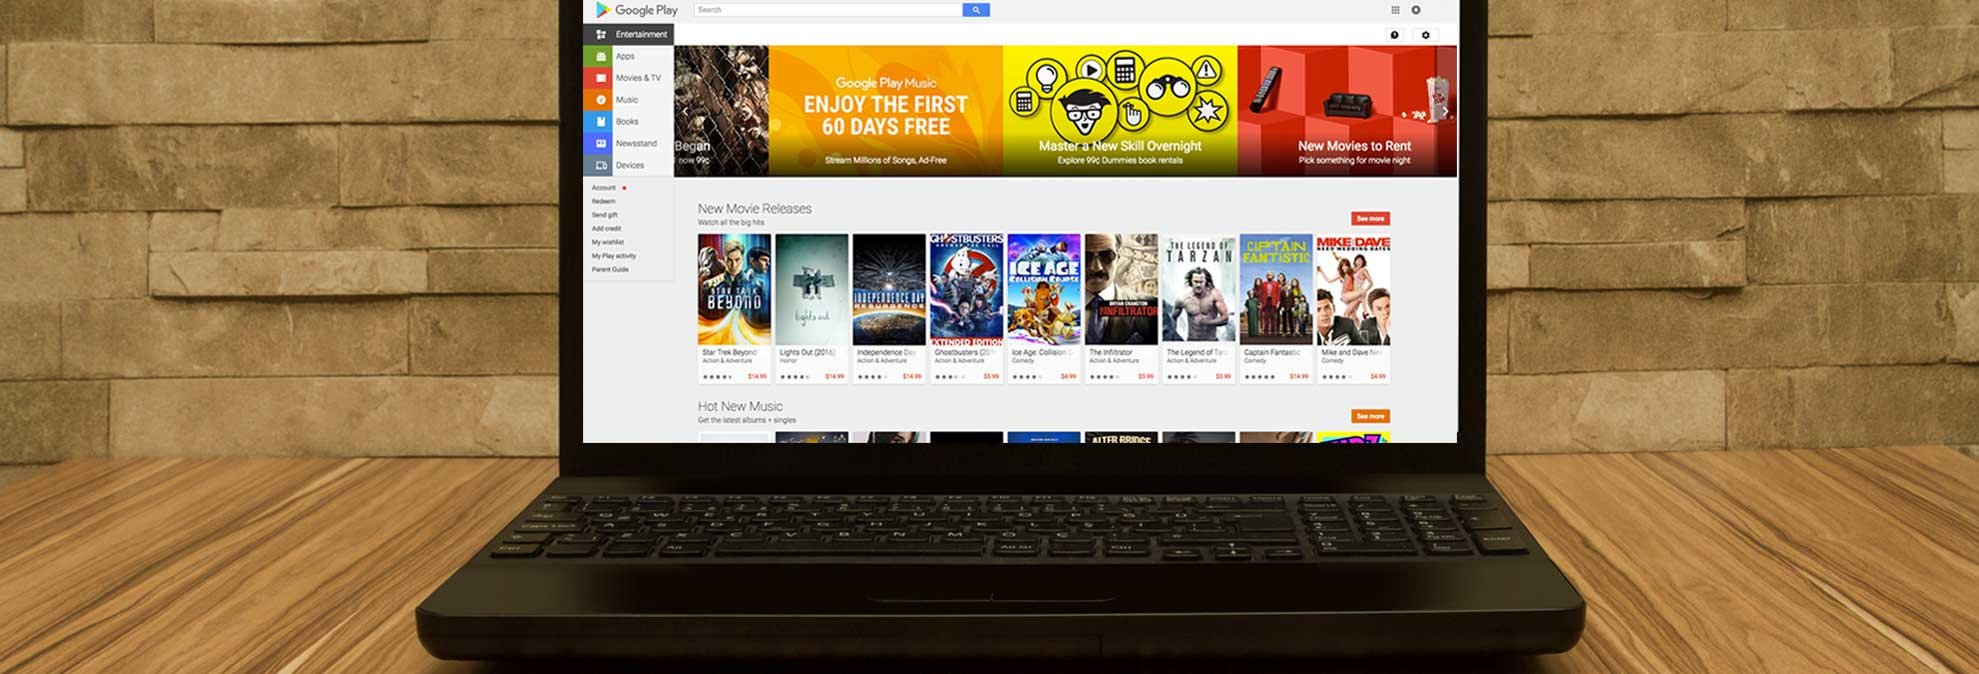 how to get google play store on chromebook